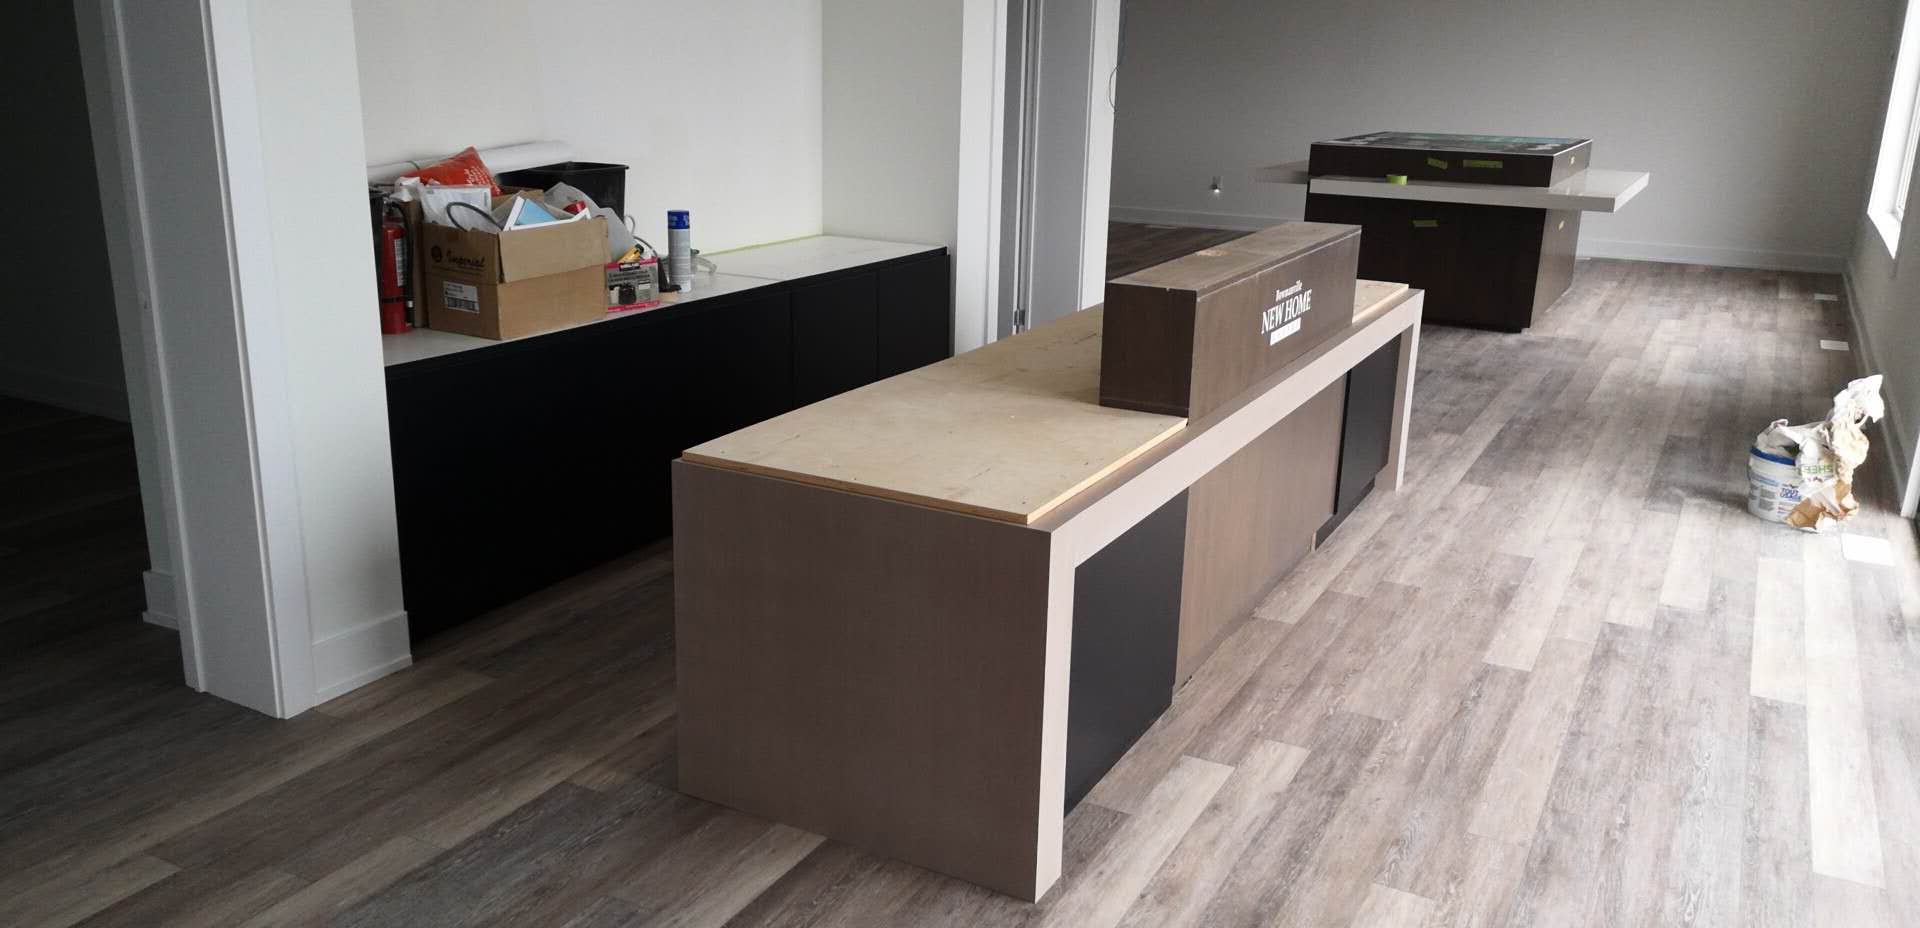 Reception Counter and Between Wall Storage Cabinet